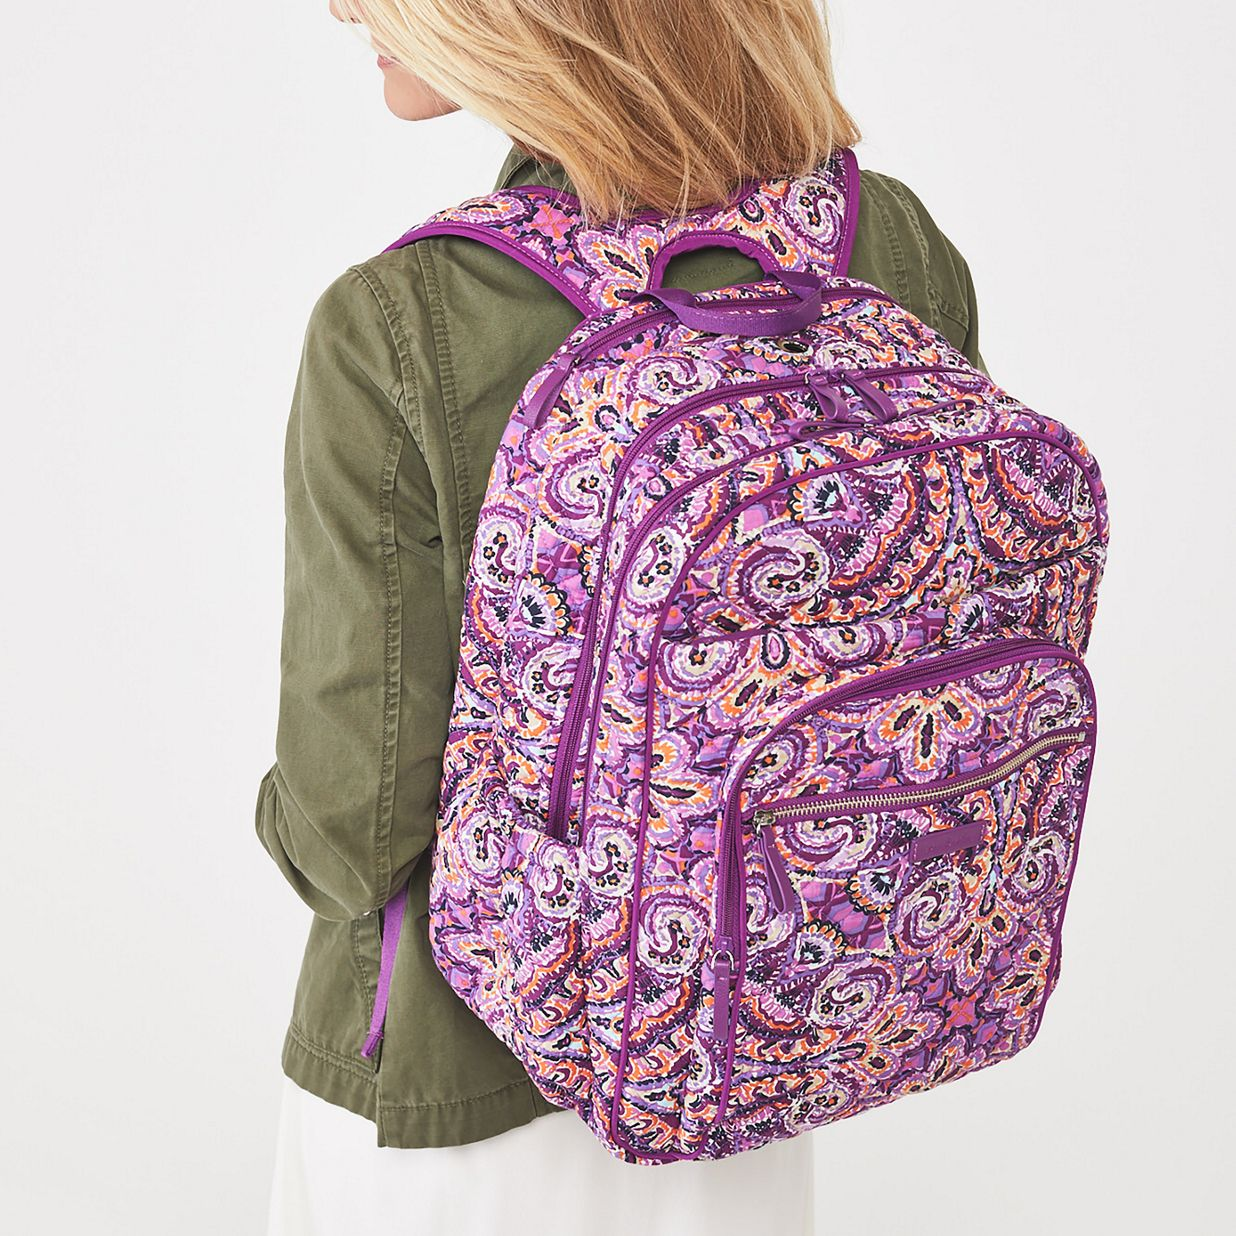 a90e766d4dca ... Image of Iconic XL Campus Backpack in Butterfly Flutter ...